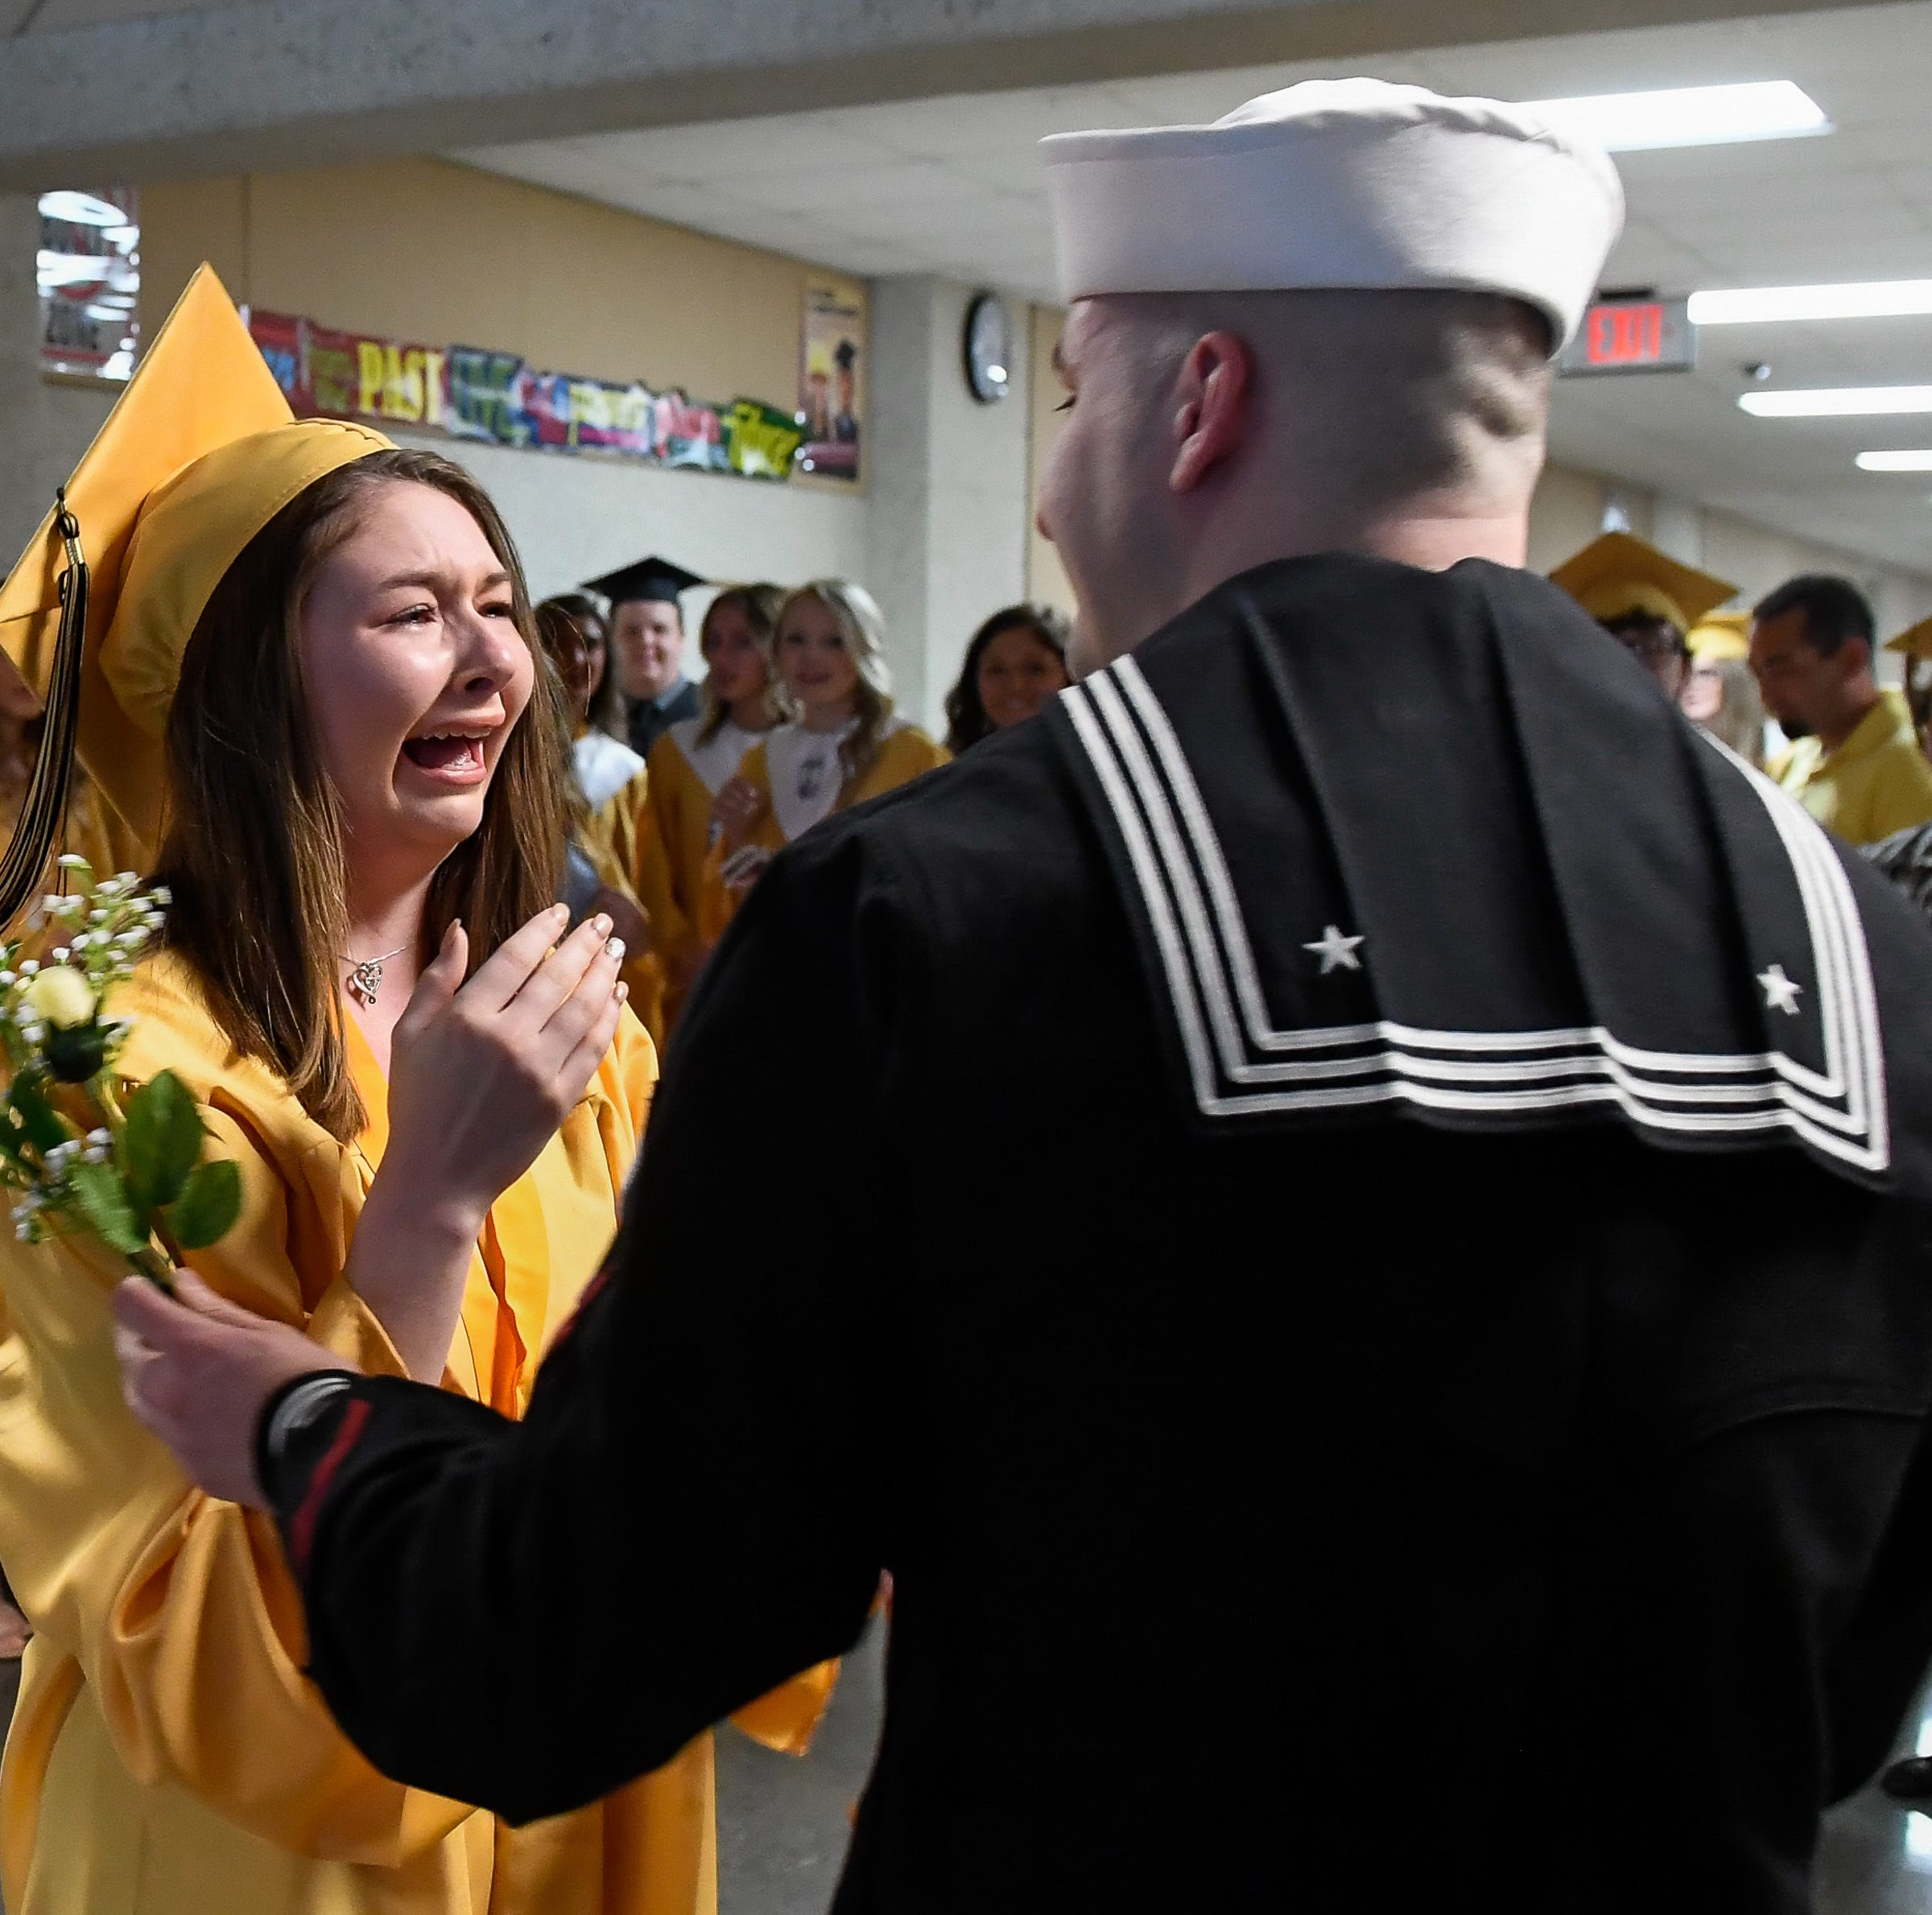 Boonville High School's Emma West surprised by Navy brother on graduation day